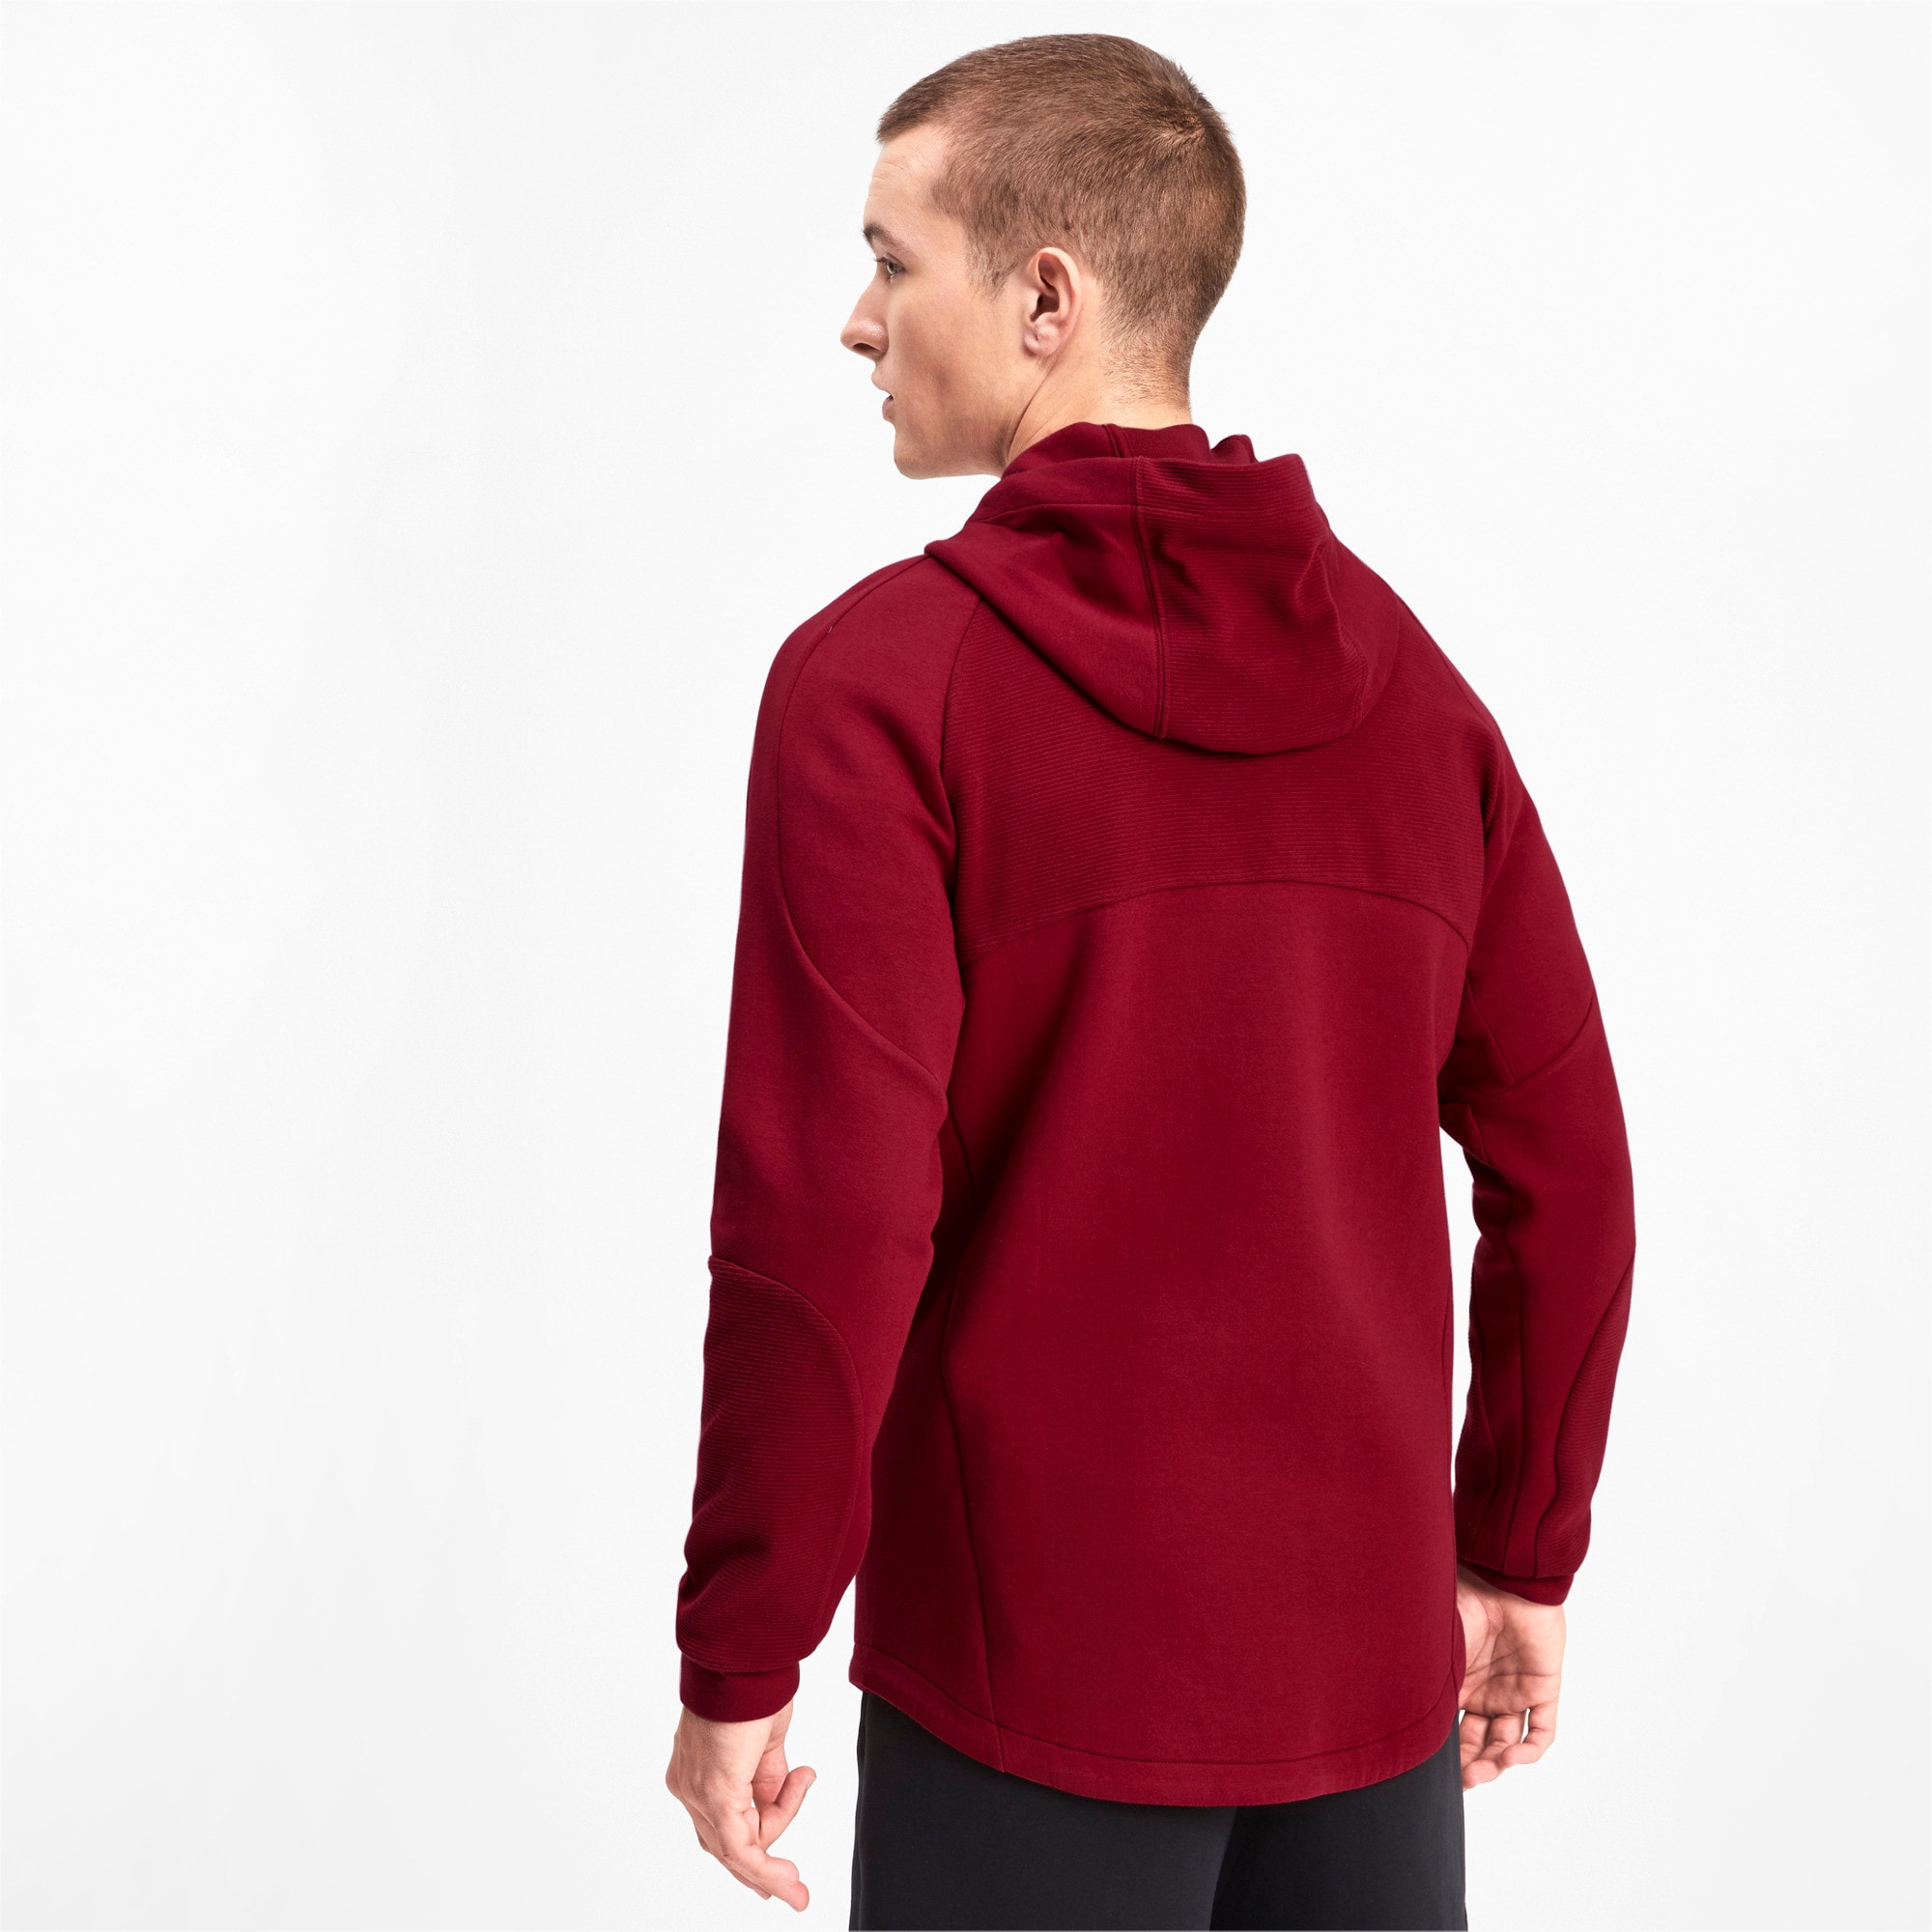 Thumbnail 2 of Evostripe Men's Full Zip Hoodie, Rhubarb, medium